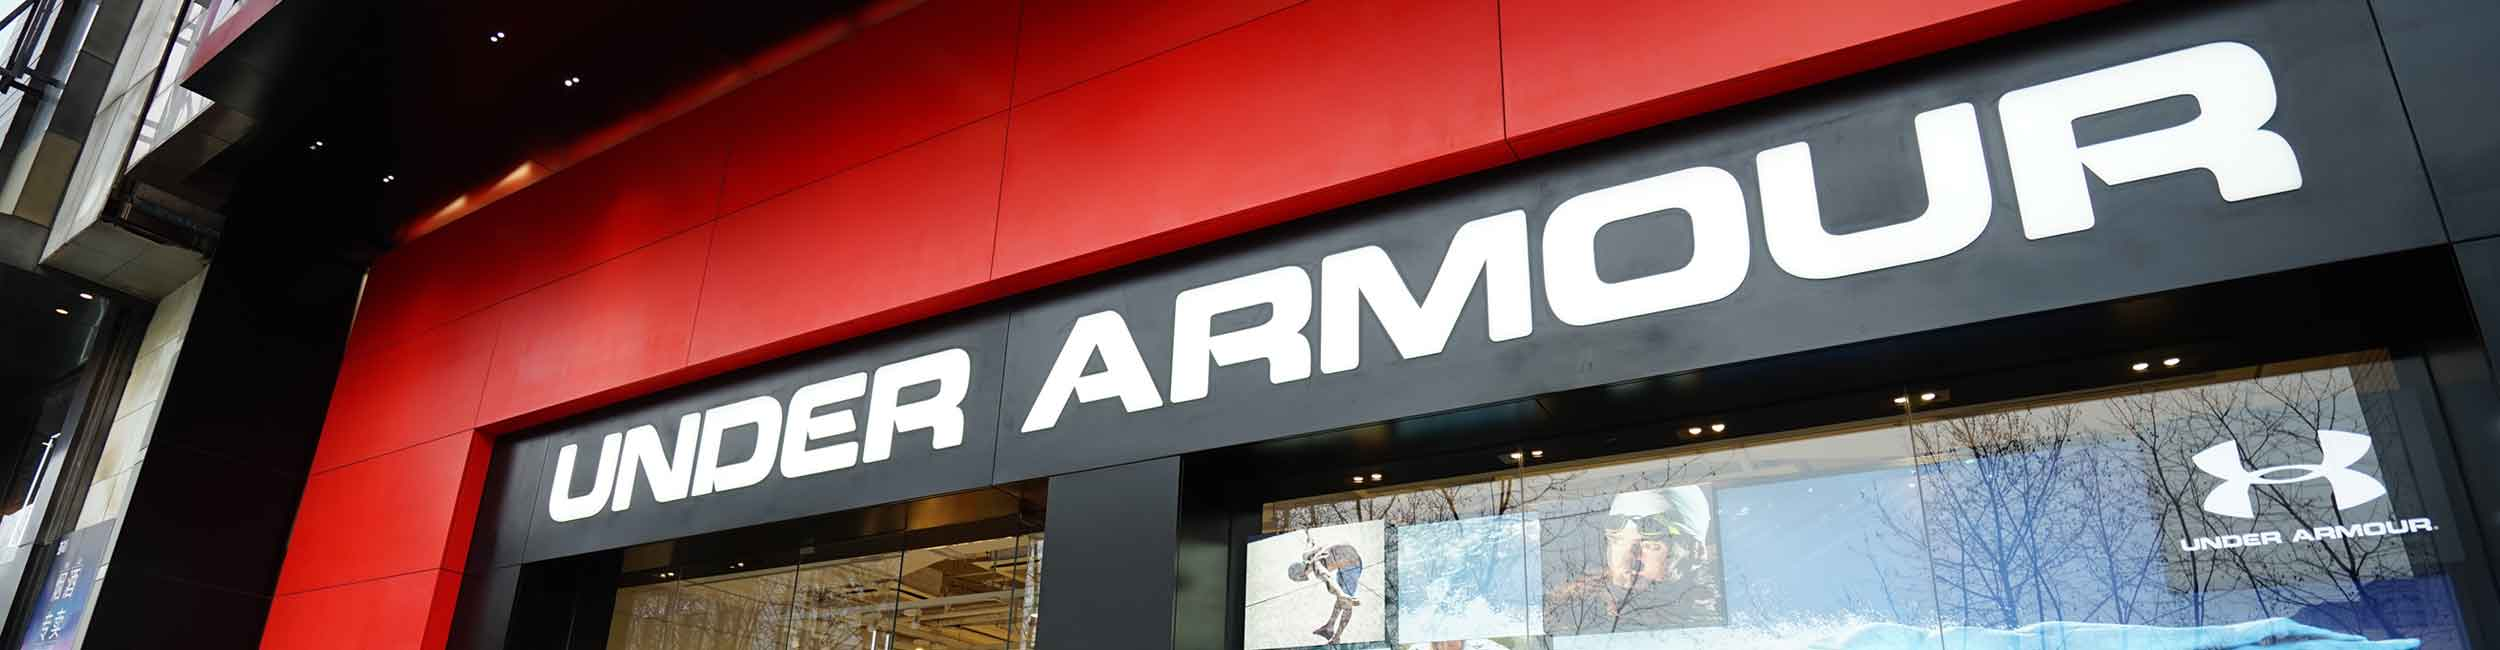 Why Advantages Advertising is Allowed to Carry and Sell the UnderArmour Brand